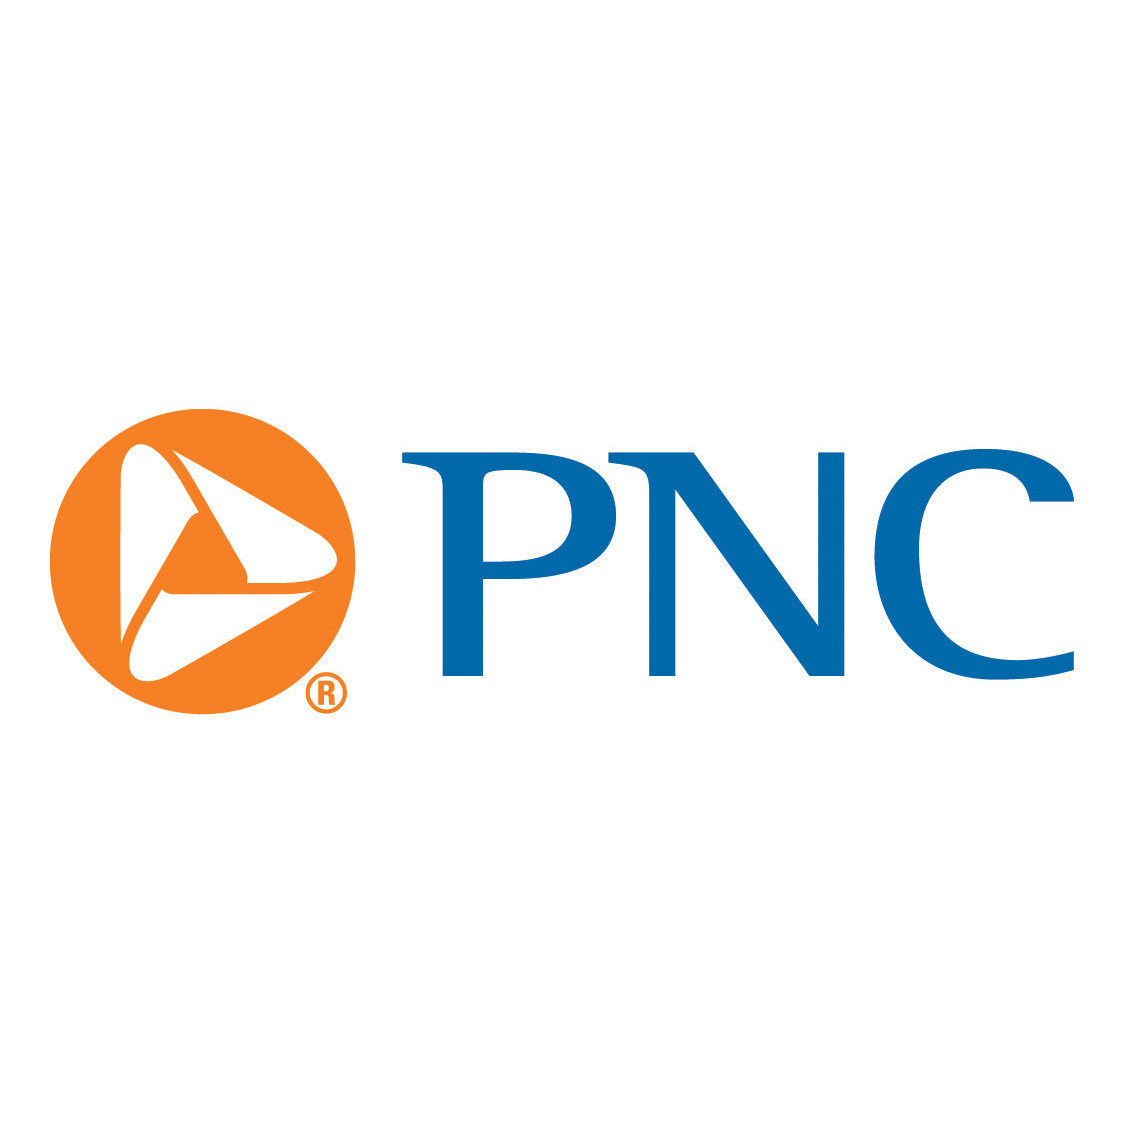 pnc customer service number 888-762-2265